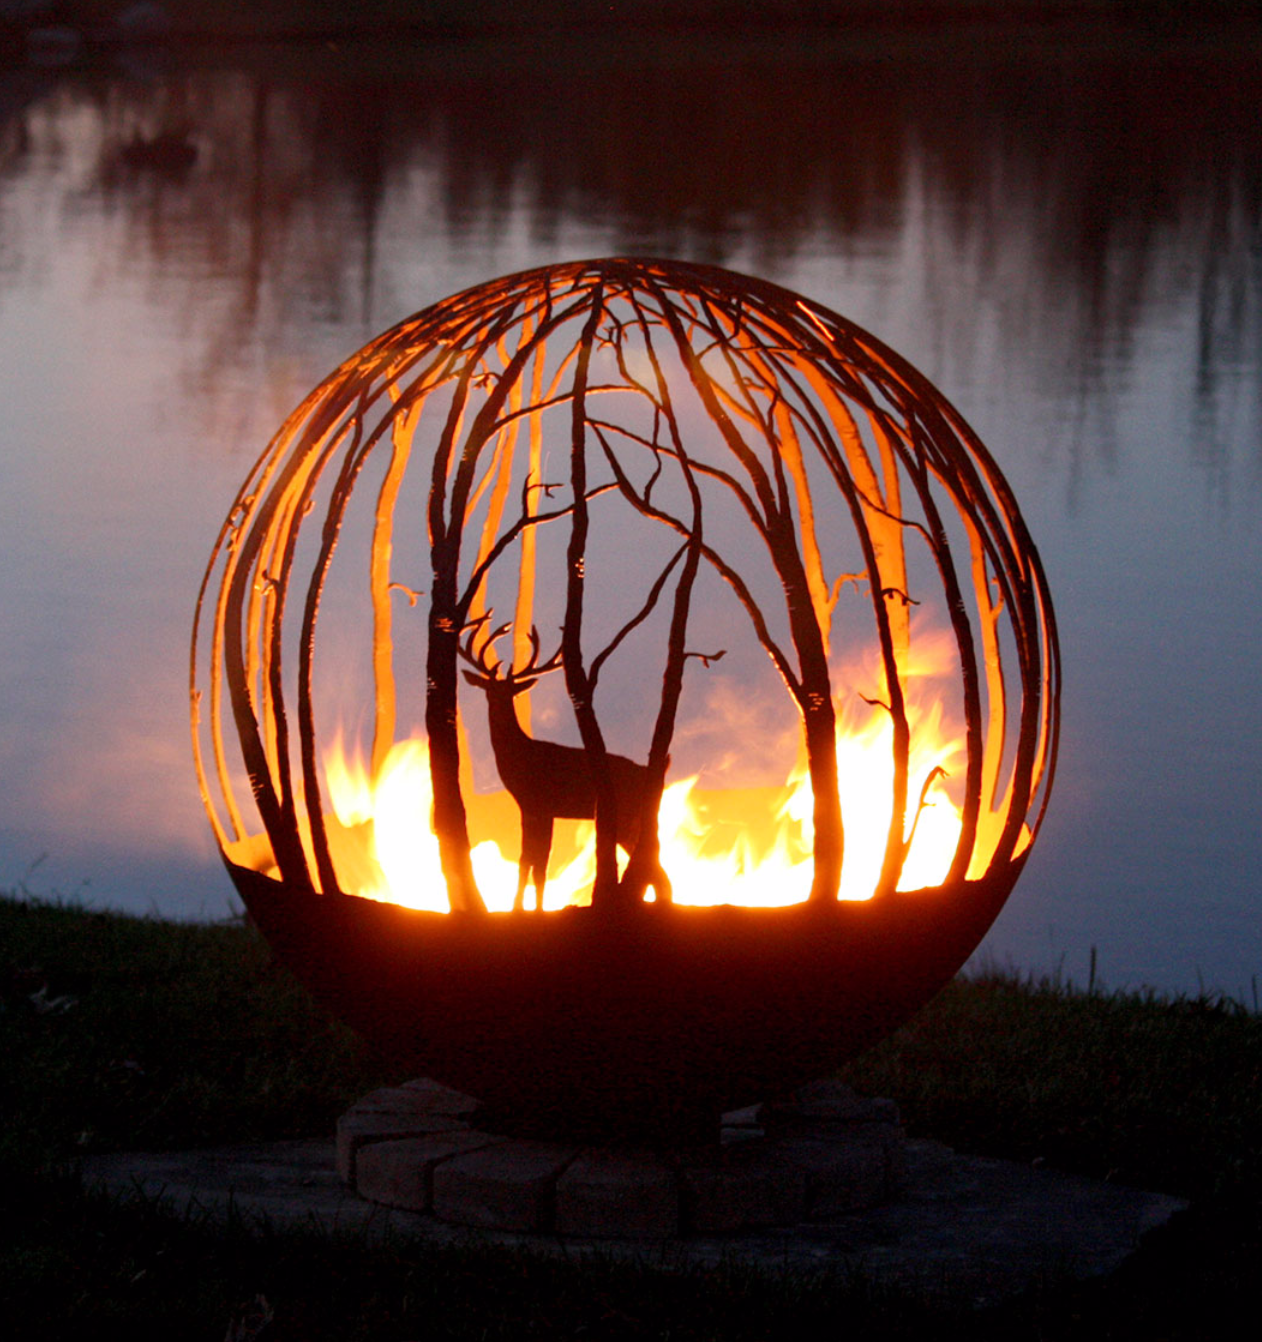 ... 20160407_204858 20160407_204912 20160409_151516  Screenshot_2016-02-07-20-00-37-1 ... - Custom Fire Pit Globes Illuminiez Studios